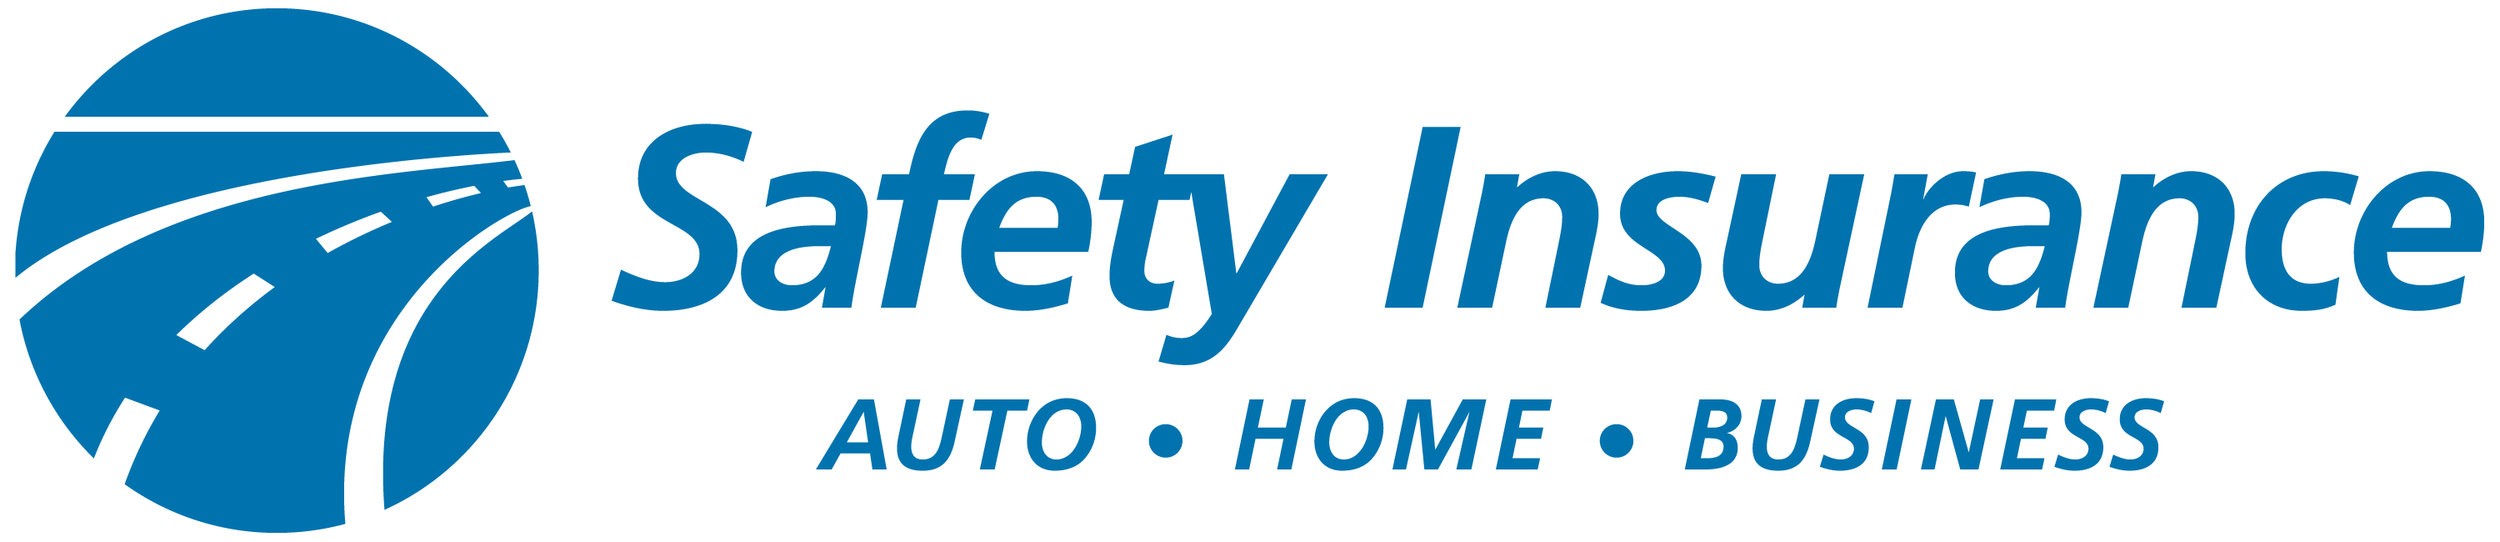 Safety Policy Holders Click Here for Additional Savings Opportunities